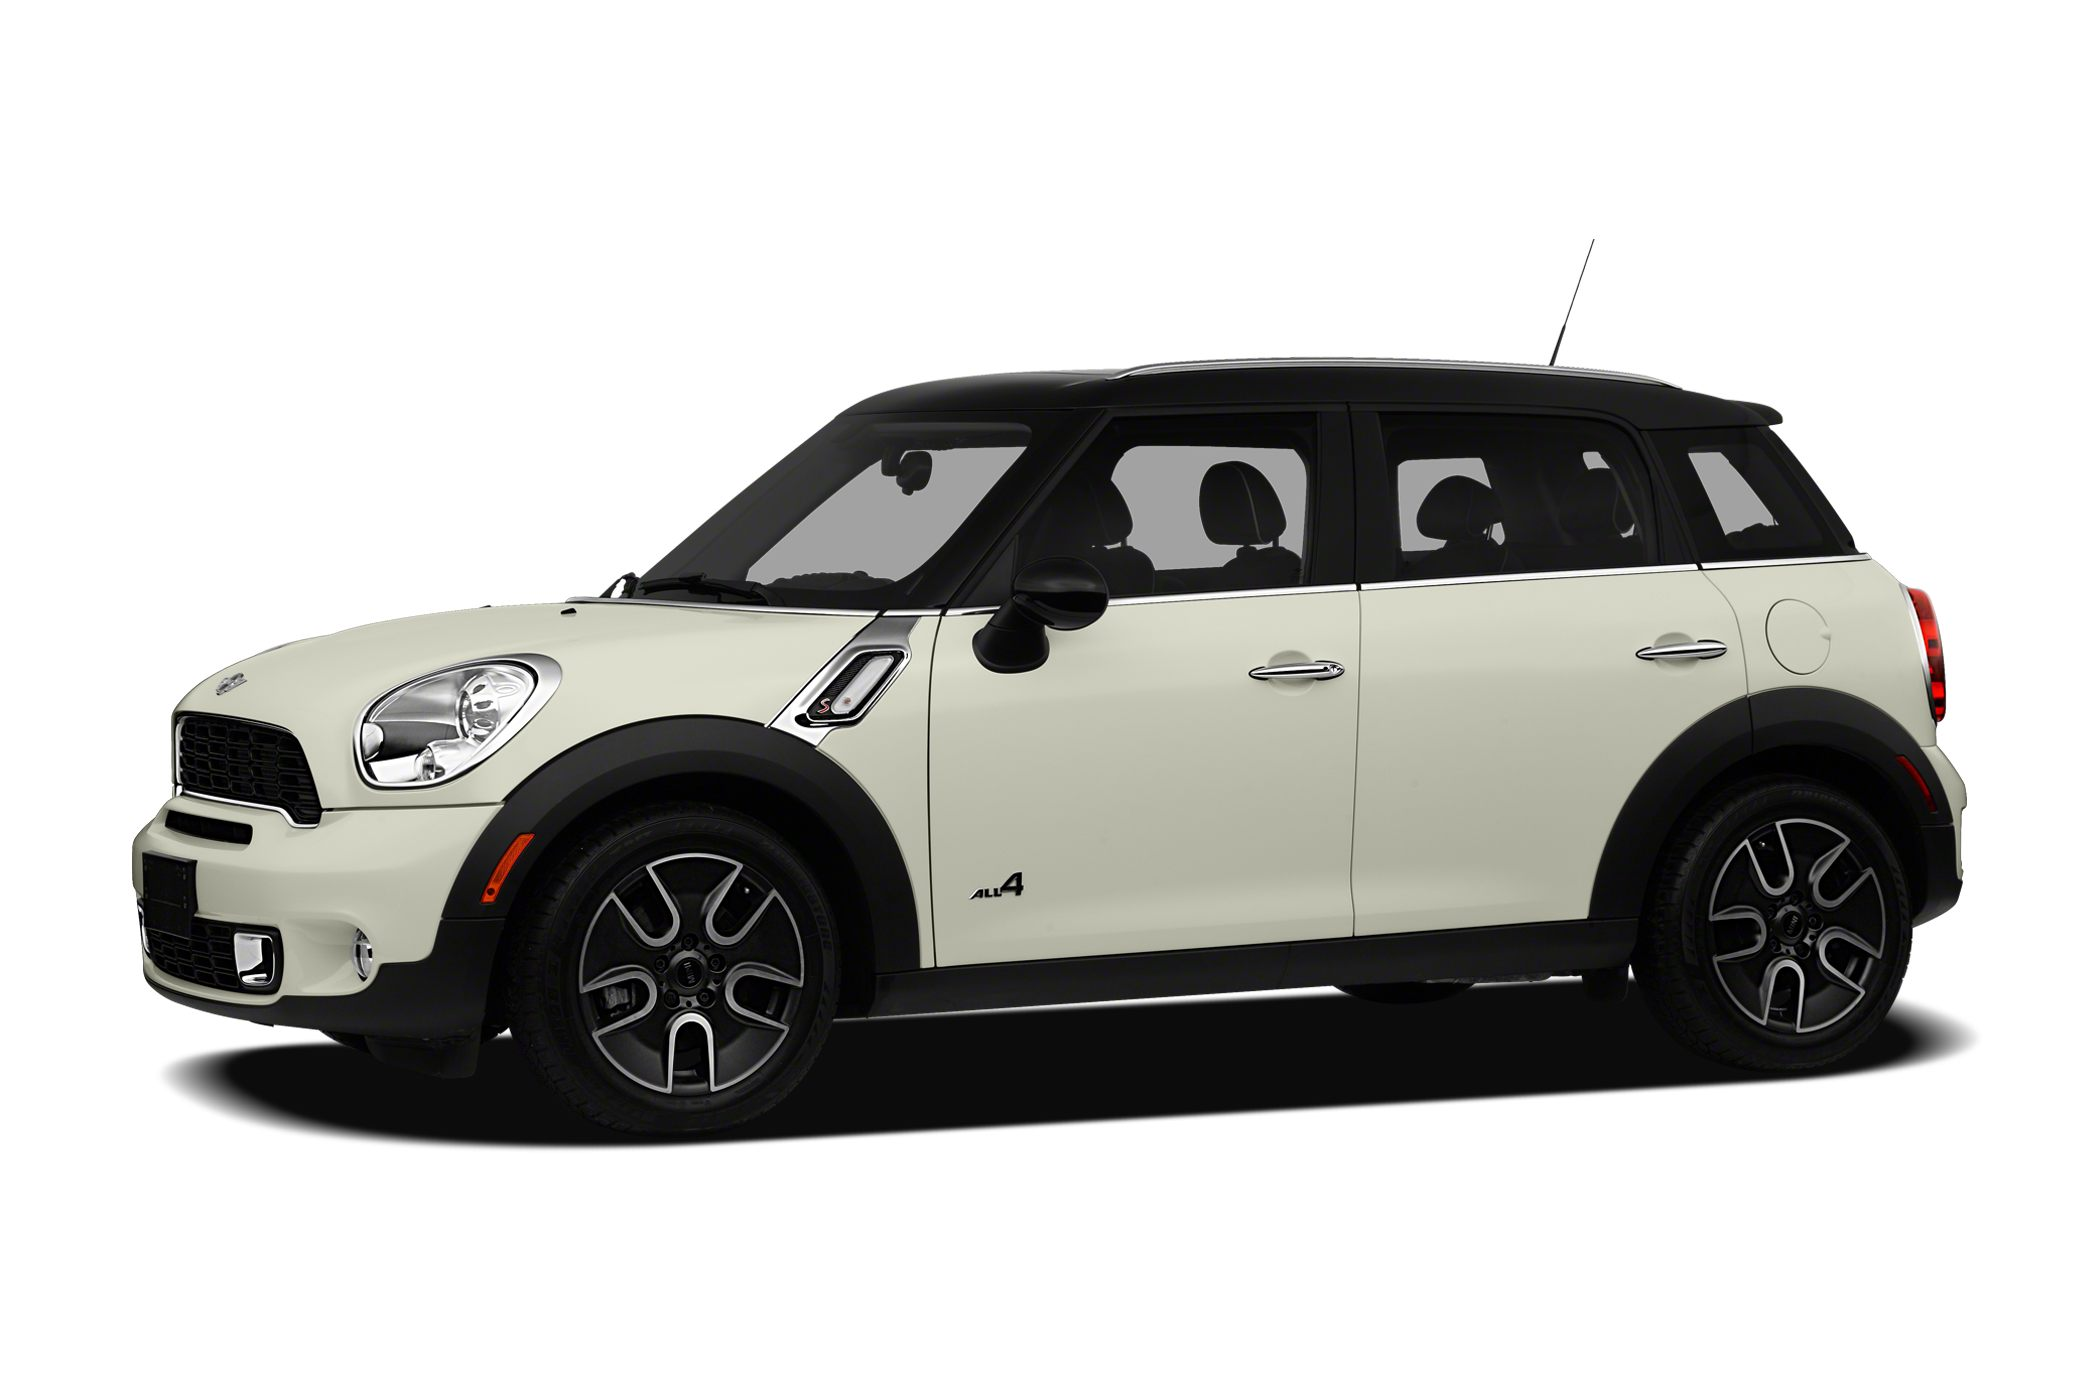 2011 MINI Cooper S Countryman OUR PRICESYoure probably wondering why our prices are so much lowe